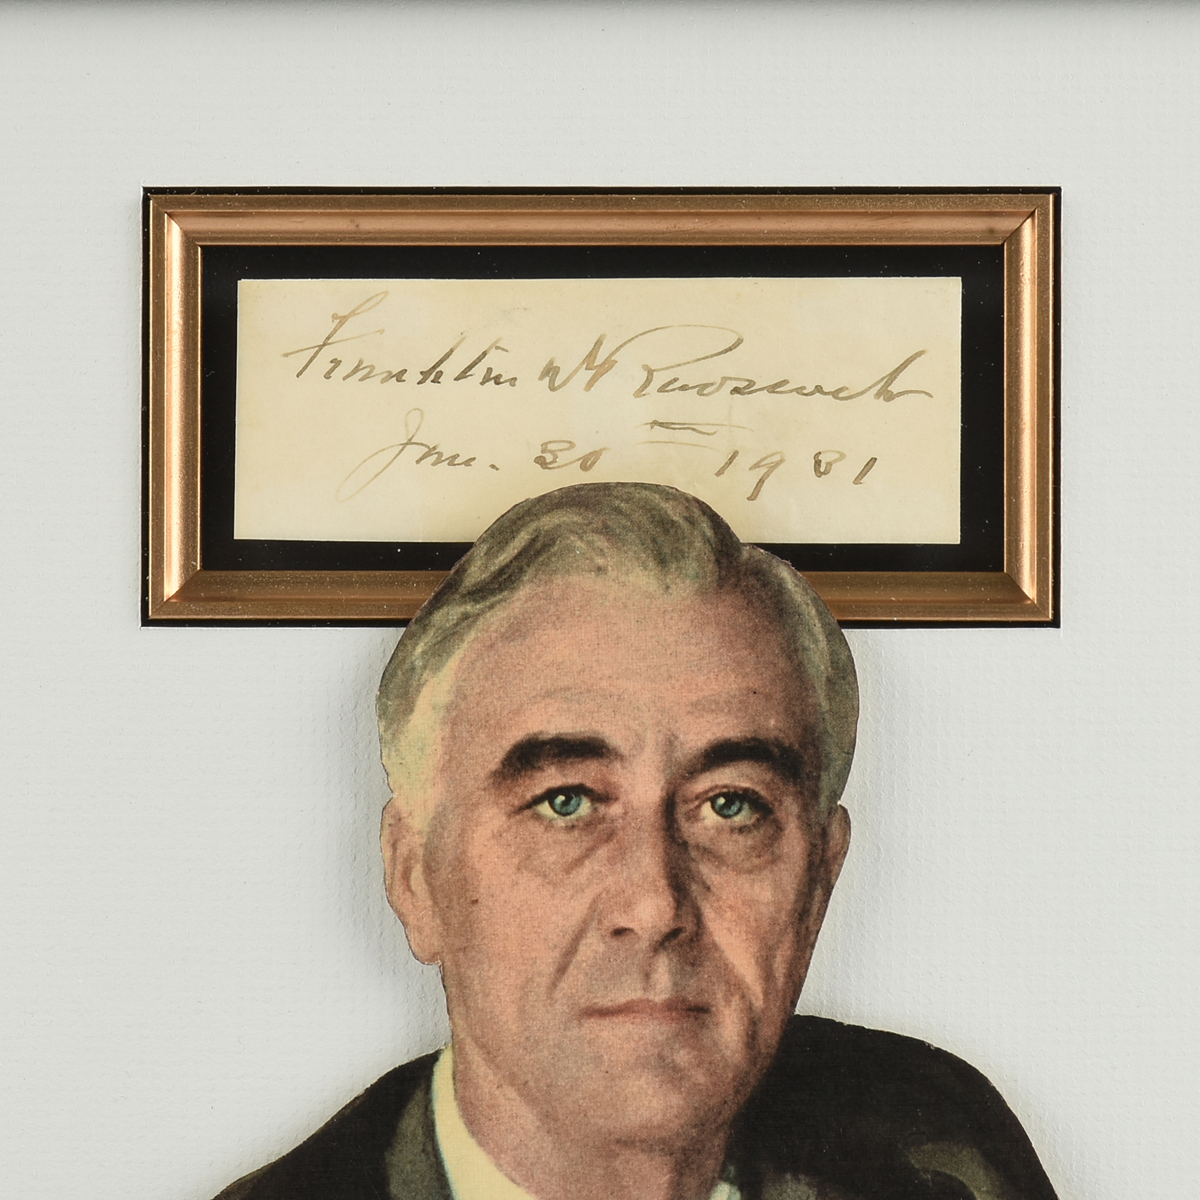 Lot 9 - AN AUTOGRAPH ON CARD, FRANKLIN DELANO ROOSEVELT (AMERICAN 1882-1945) SIGNED AND DATED JUNE 30, 1901,